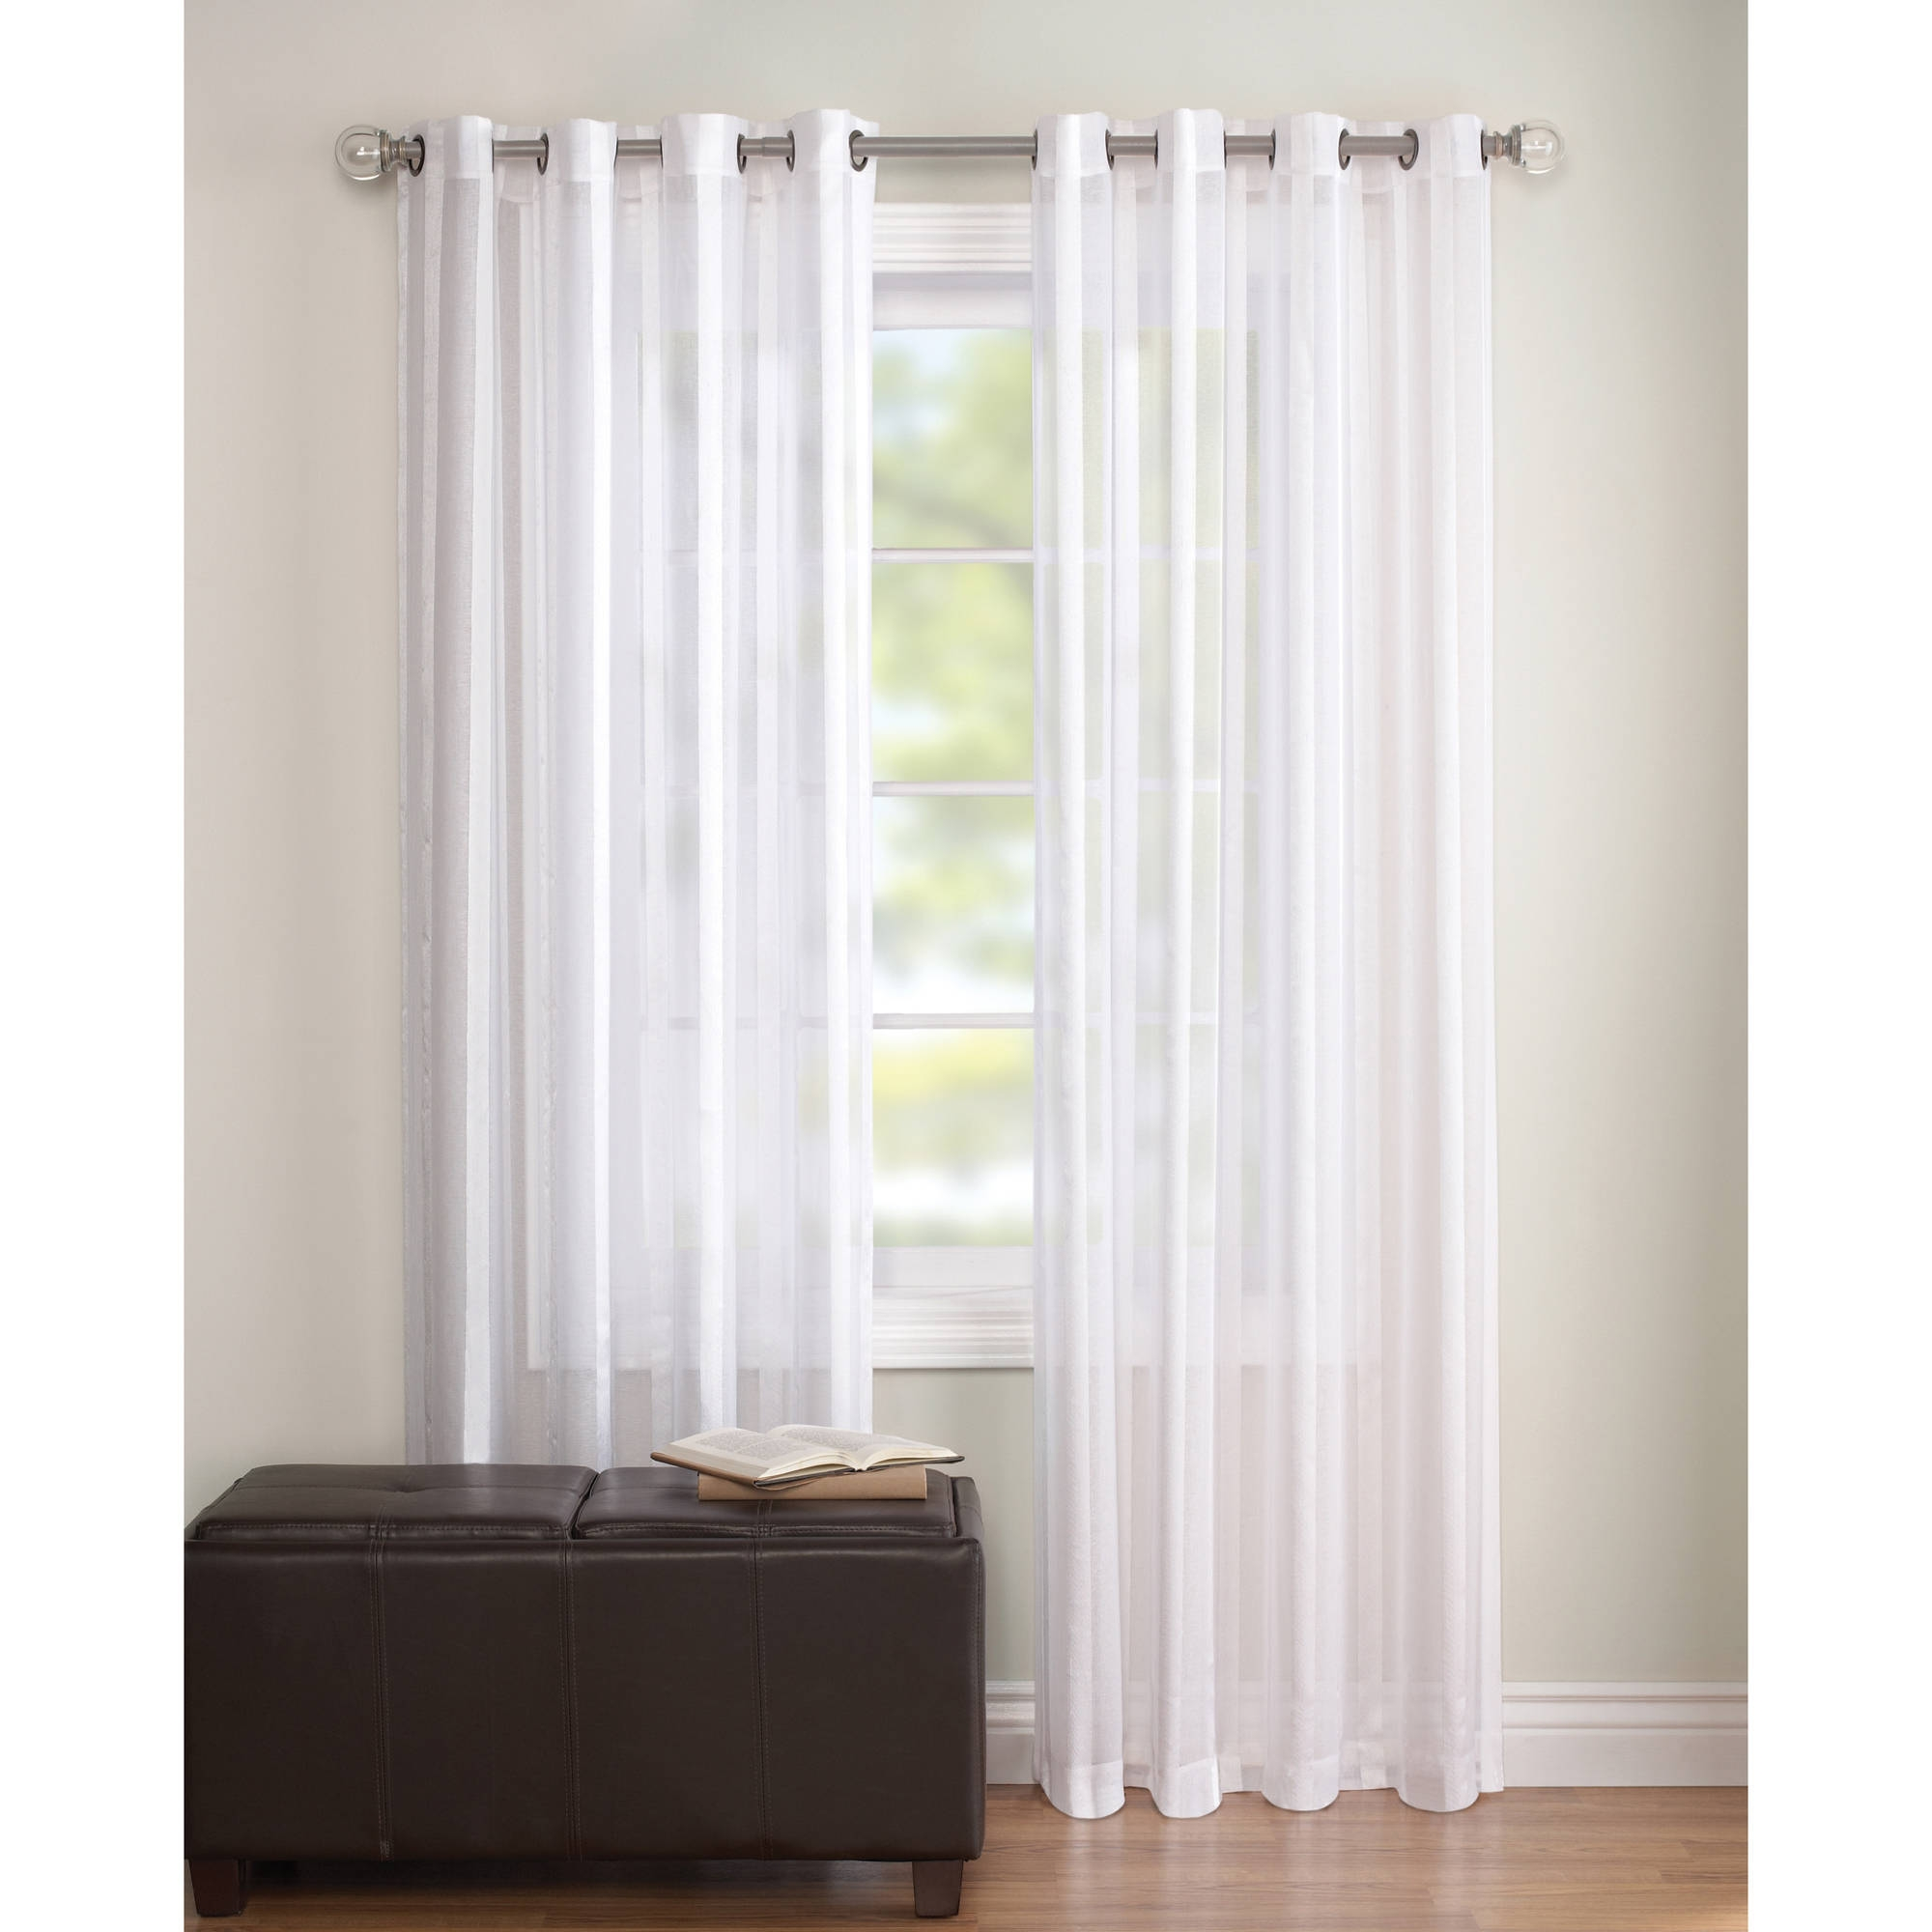 Featured Image of Sheer White Curtain Panels